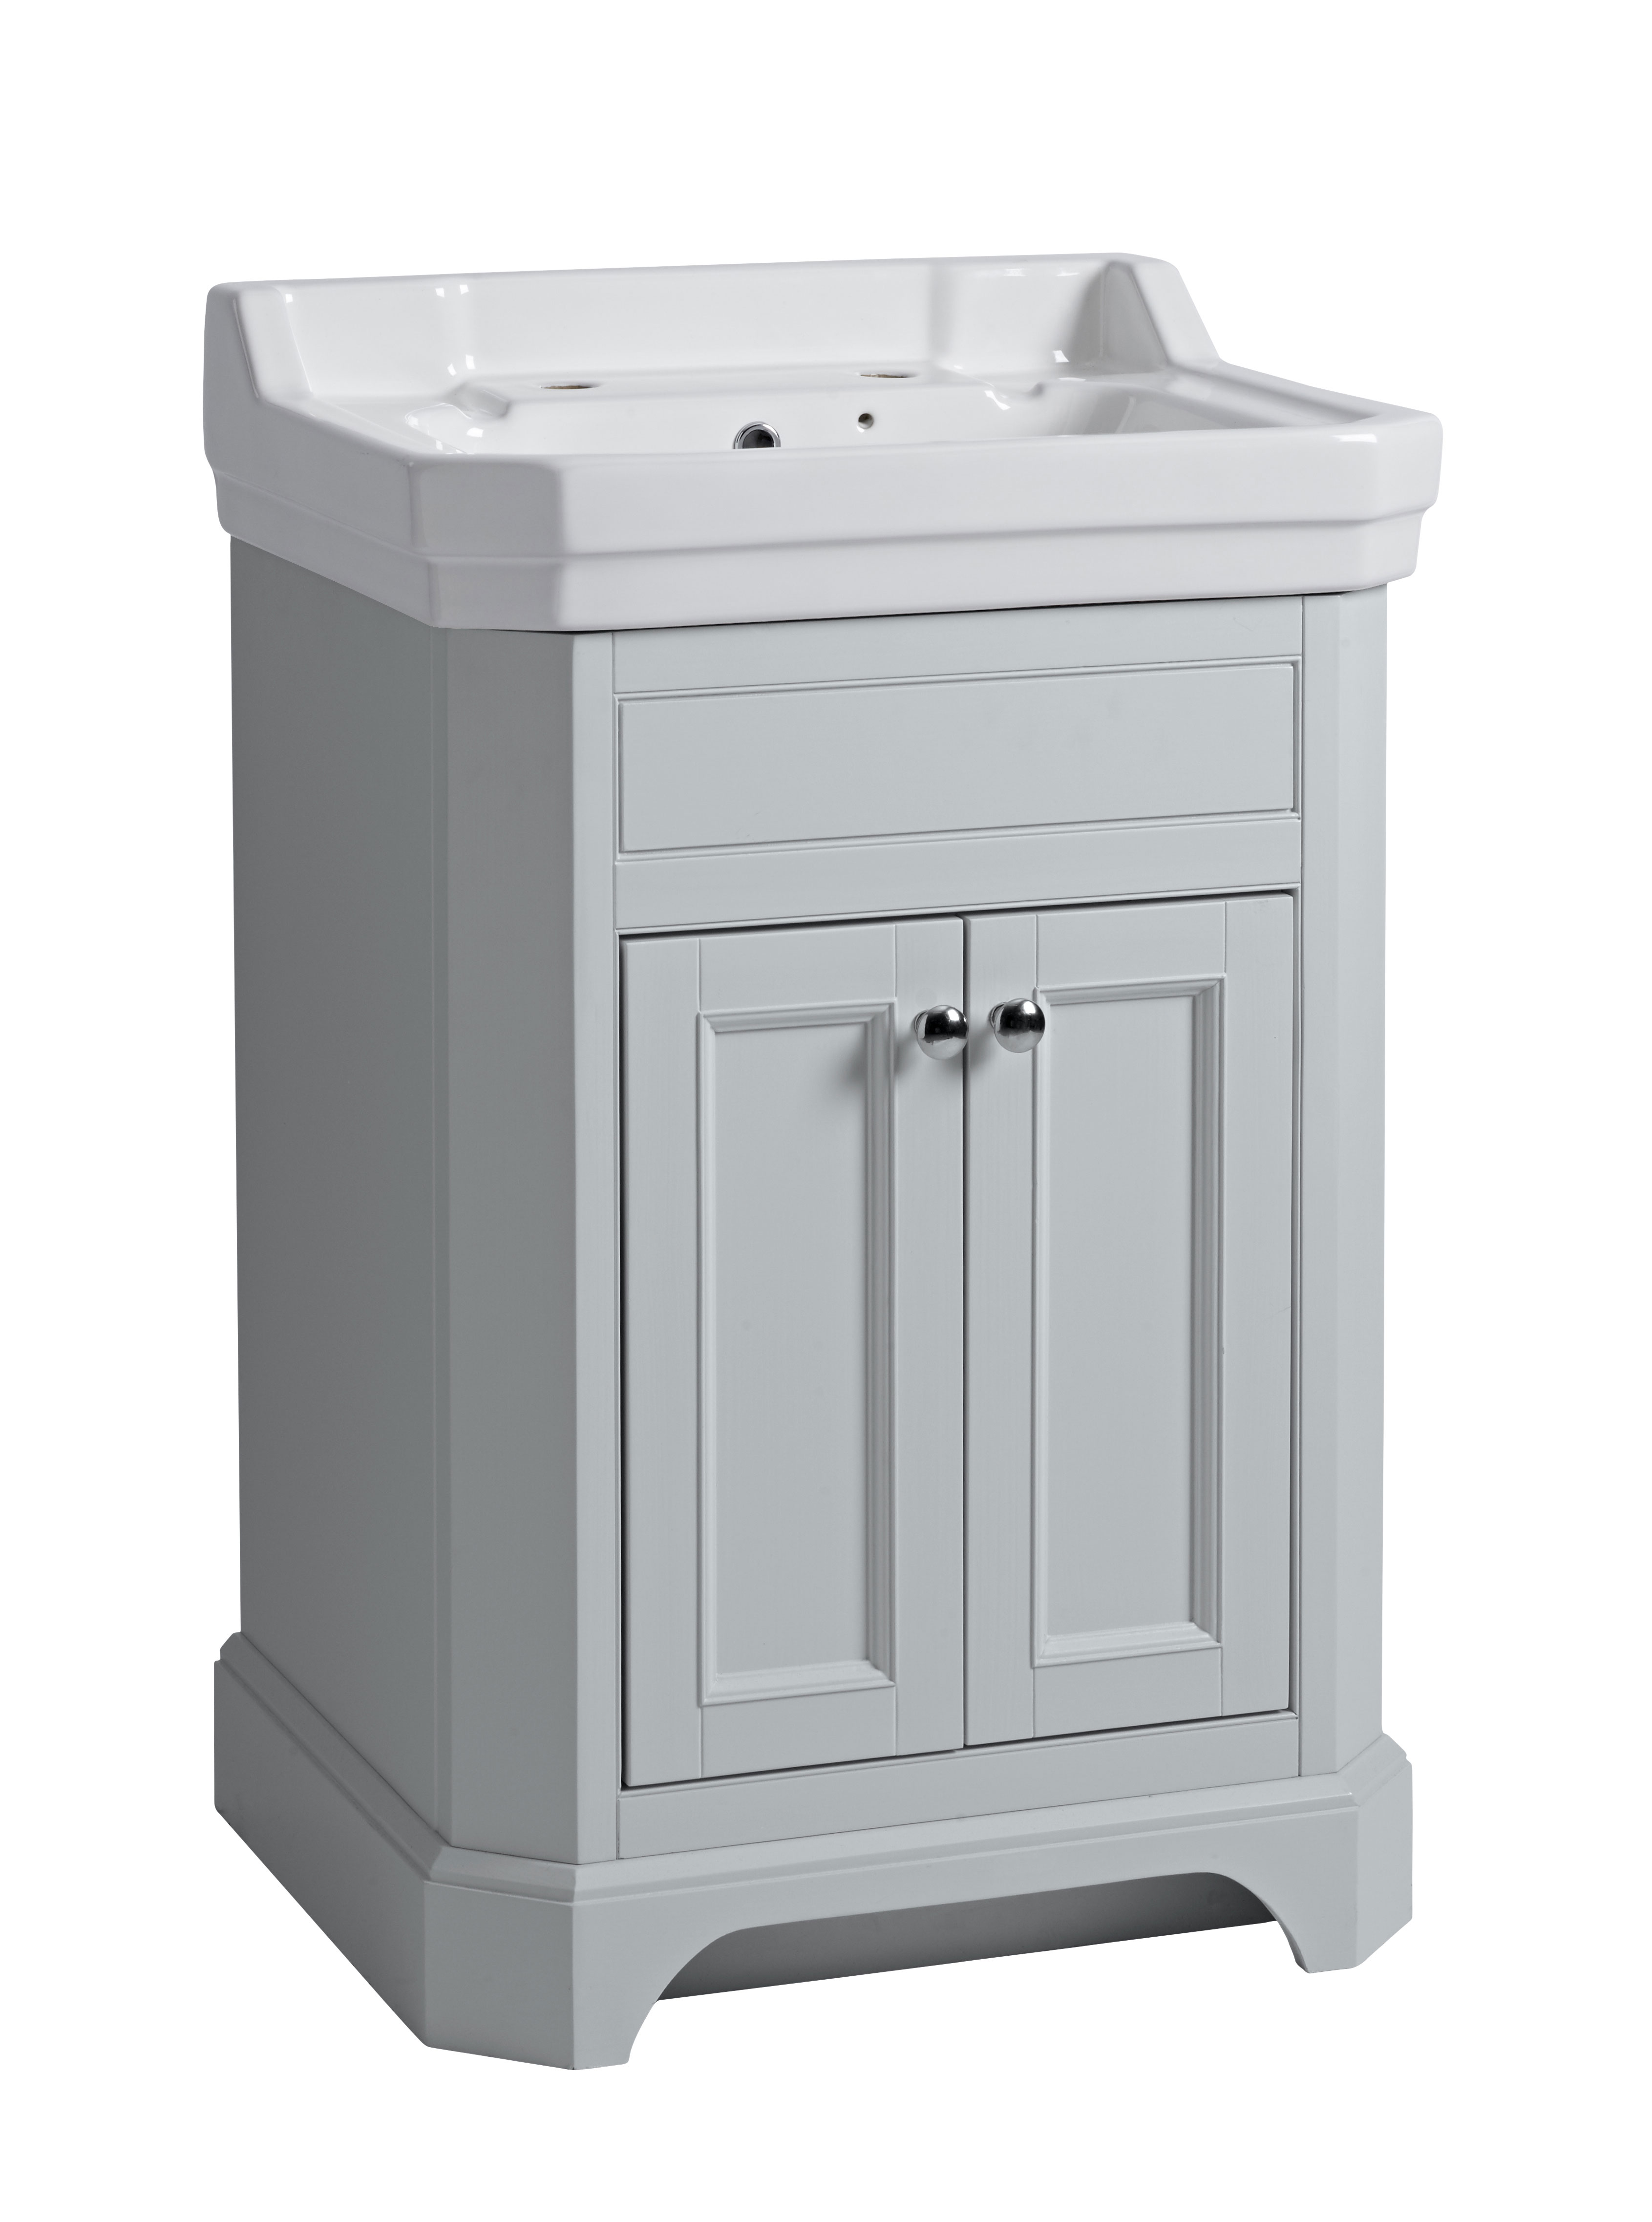 click on 60cm Vanity Unit image to enlarge